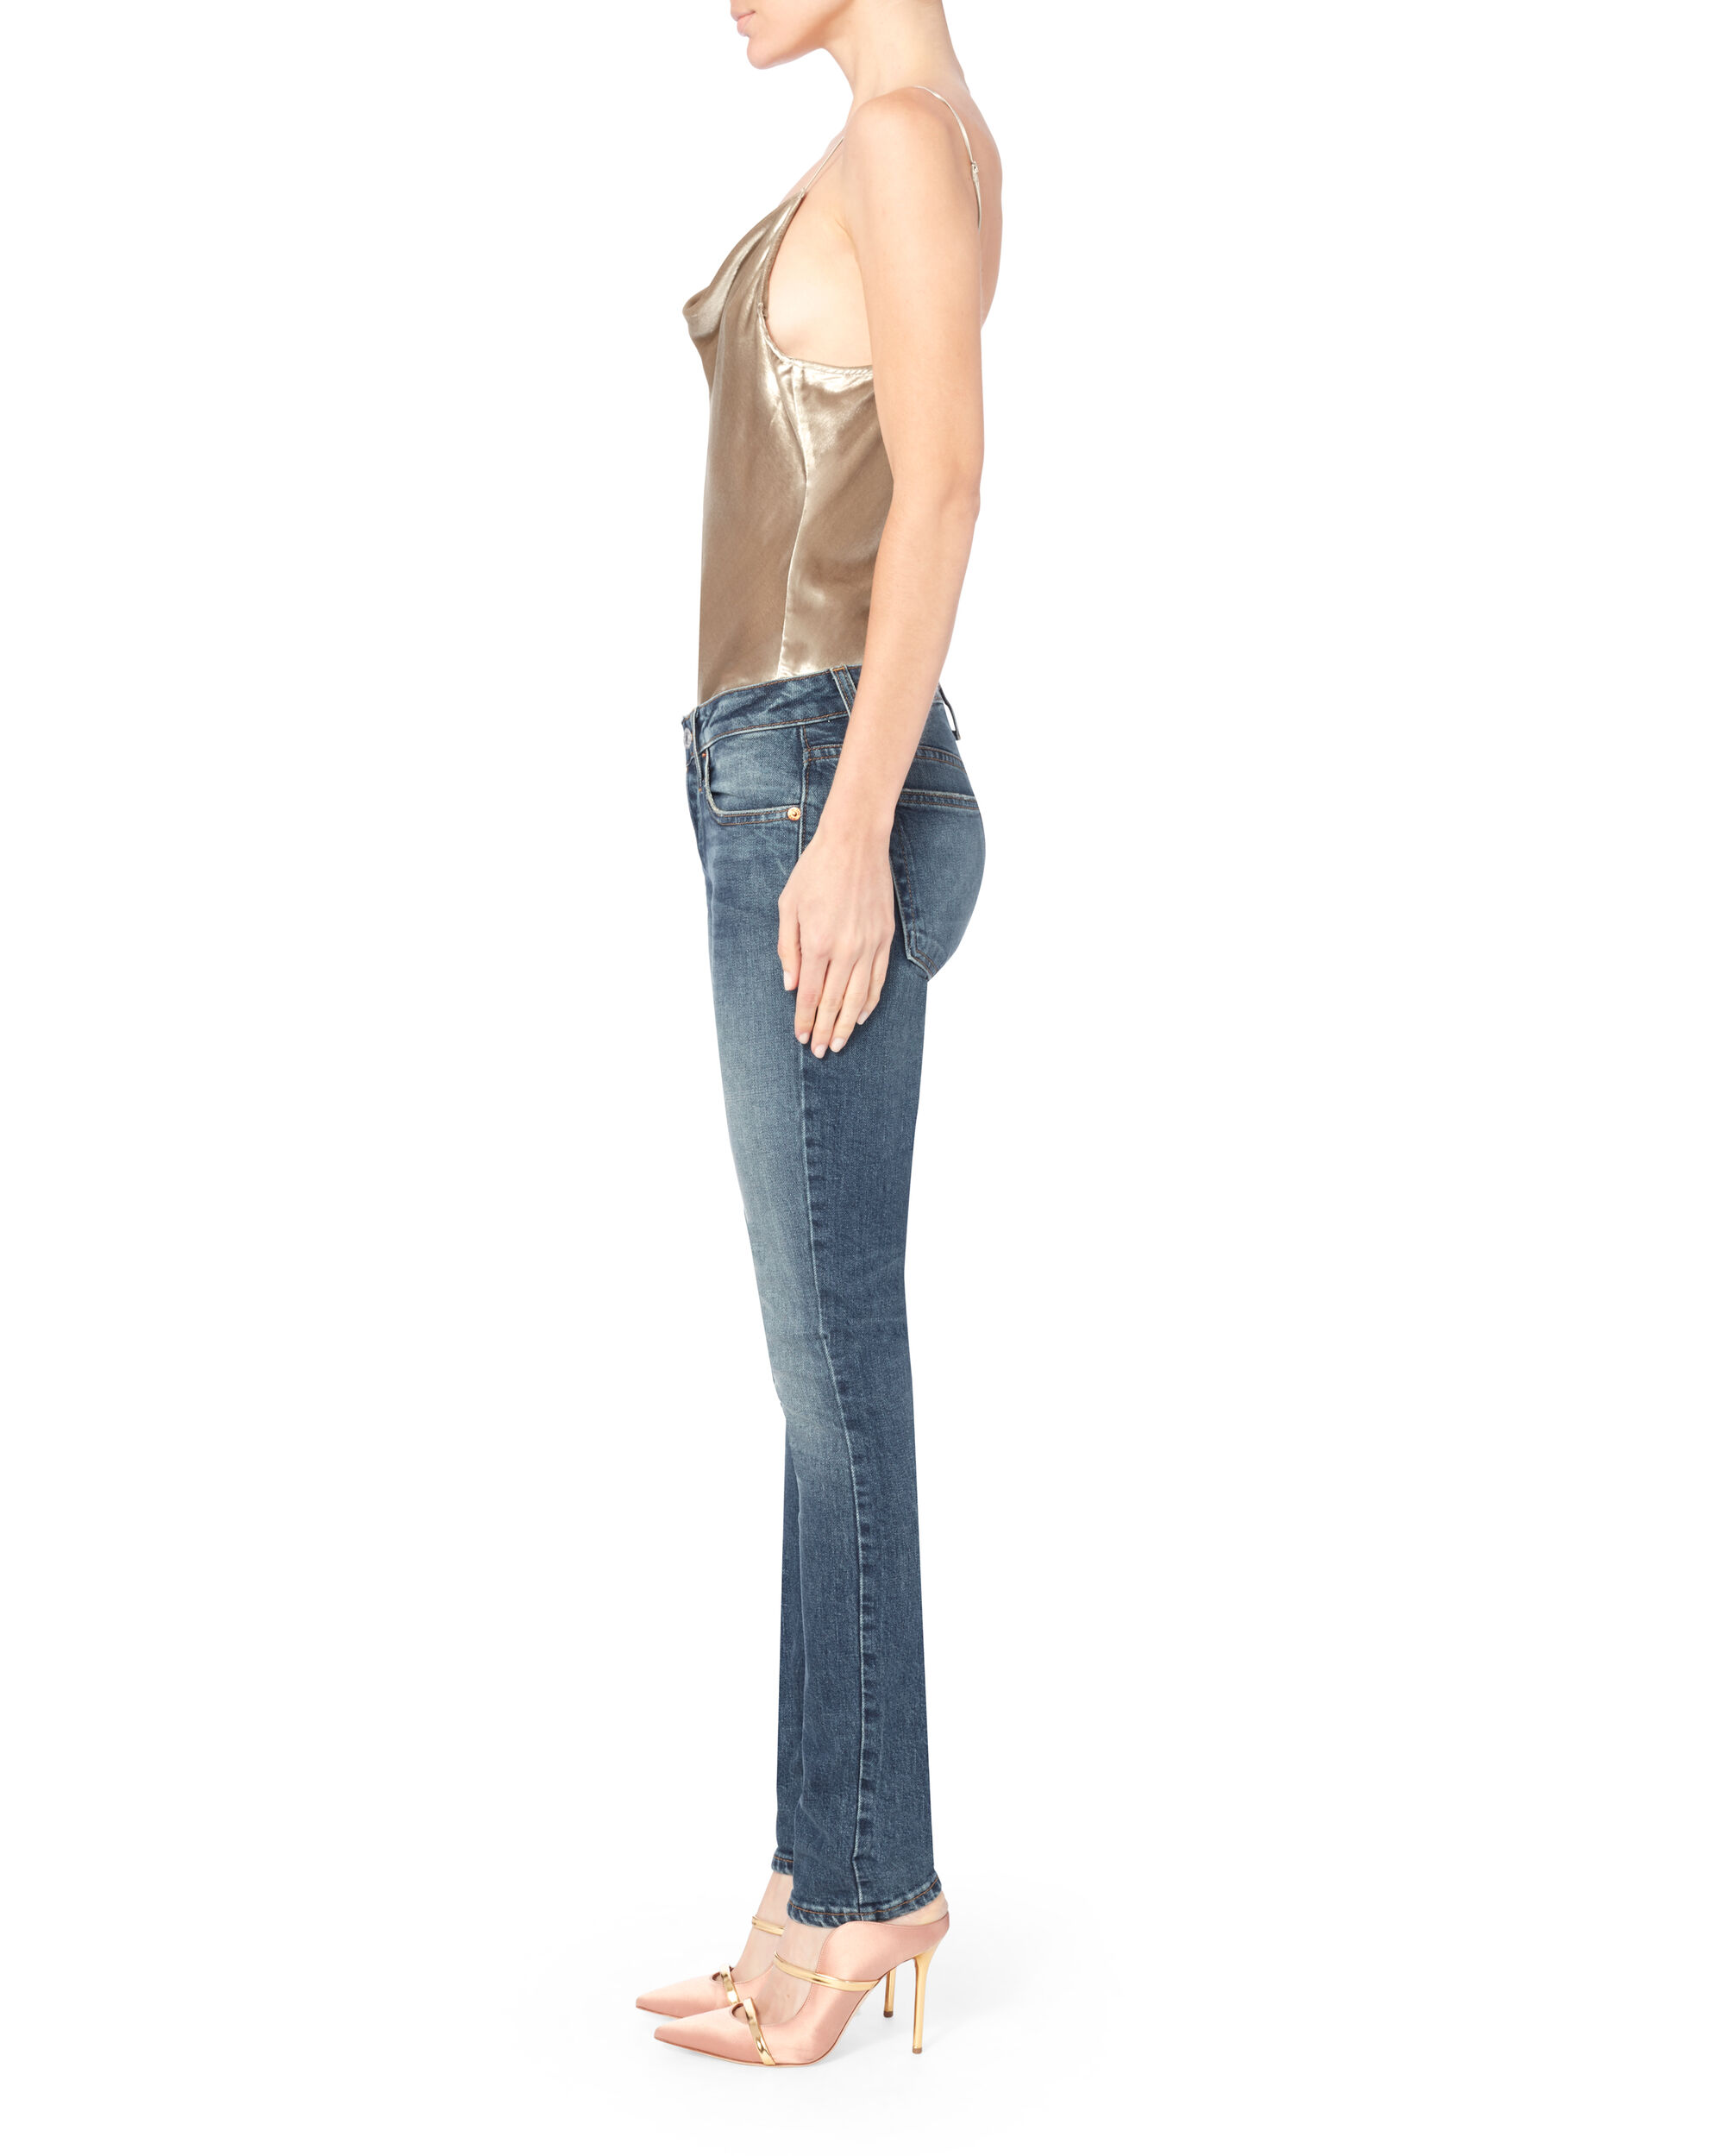 Ultra Low-Rise Stack Jeans, DENIM, hi-res